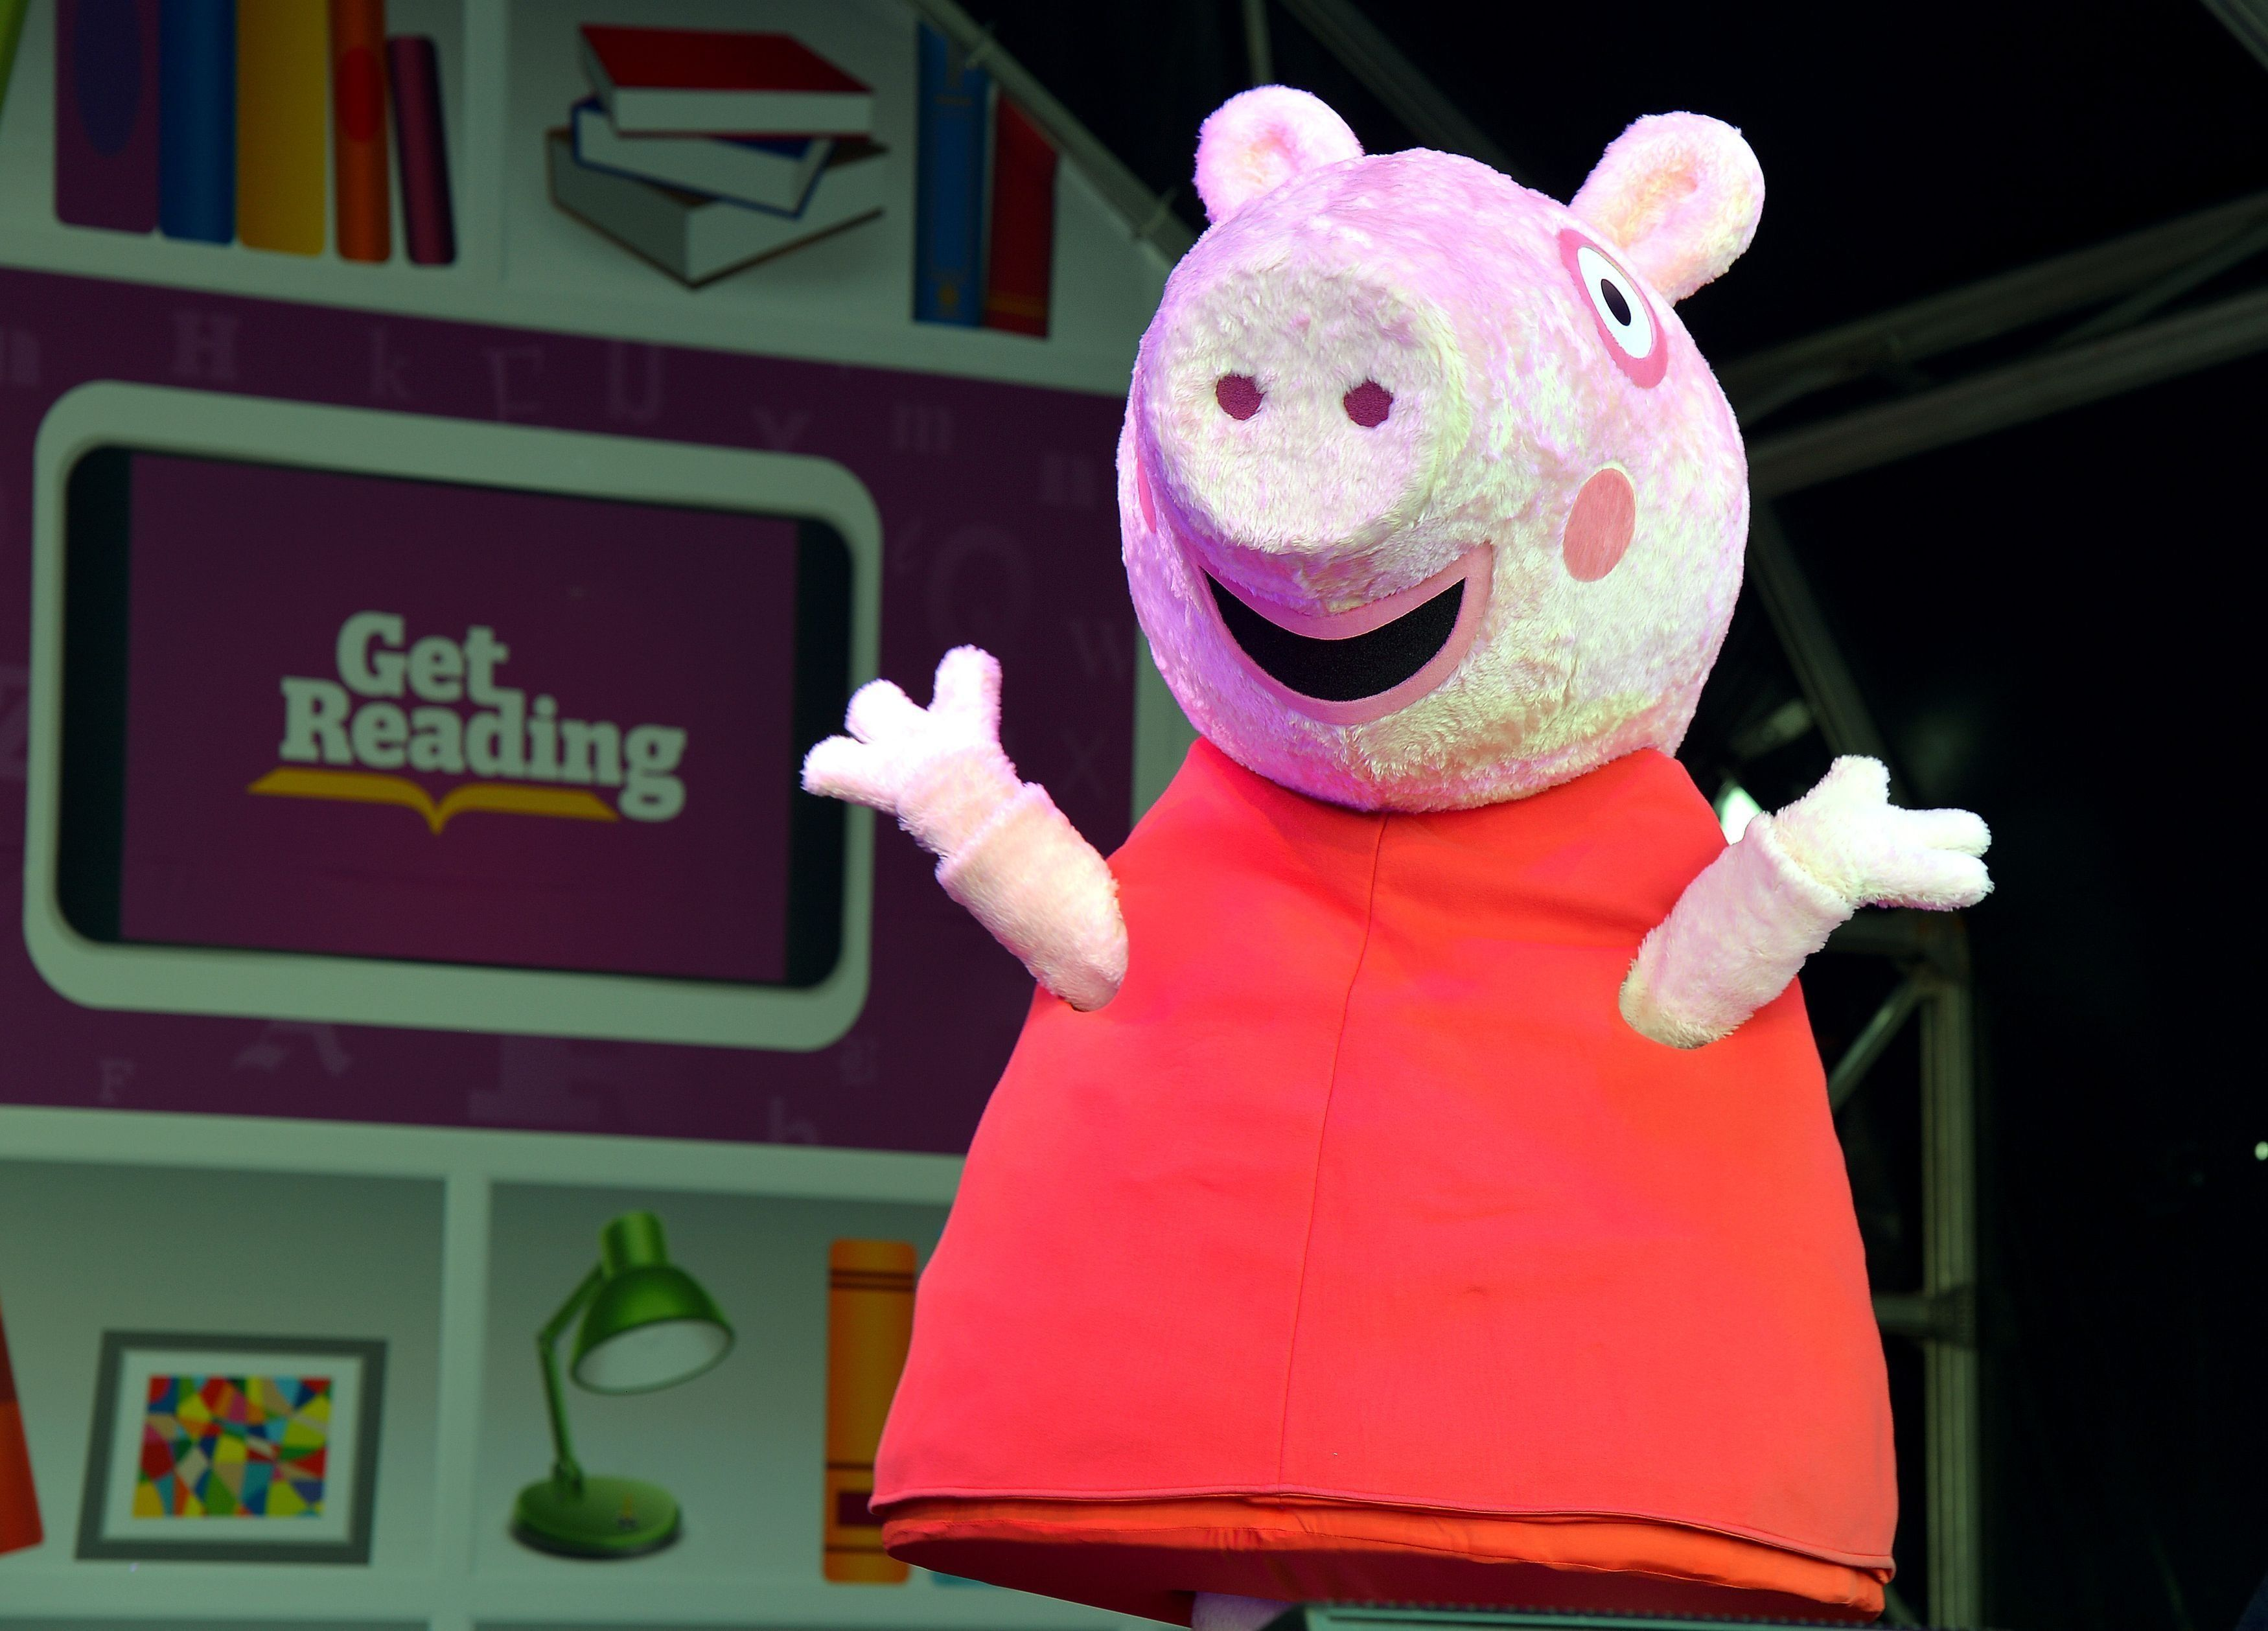 Young voters are more able to identify Peppa Pig than any of the major party